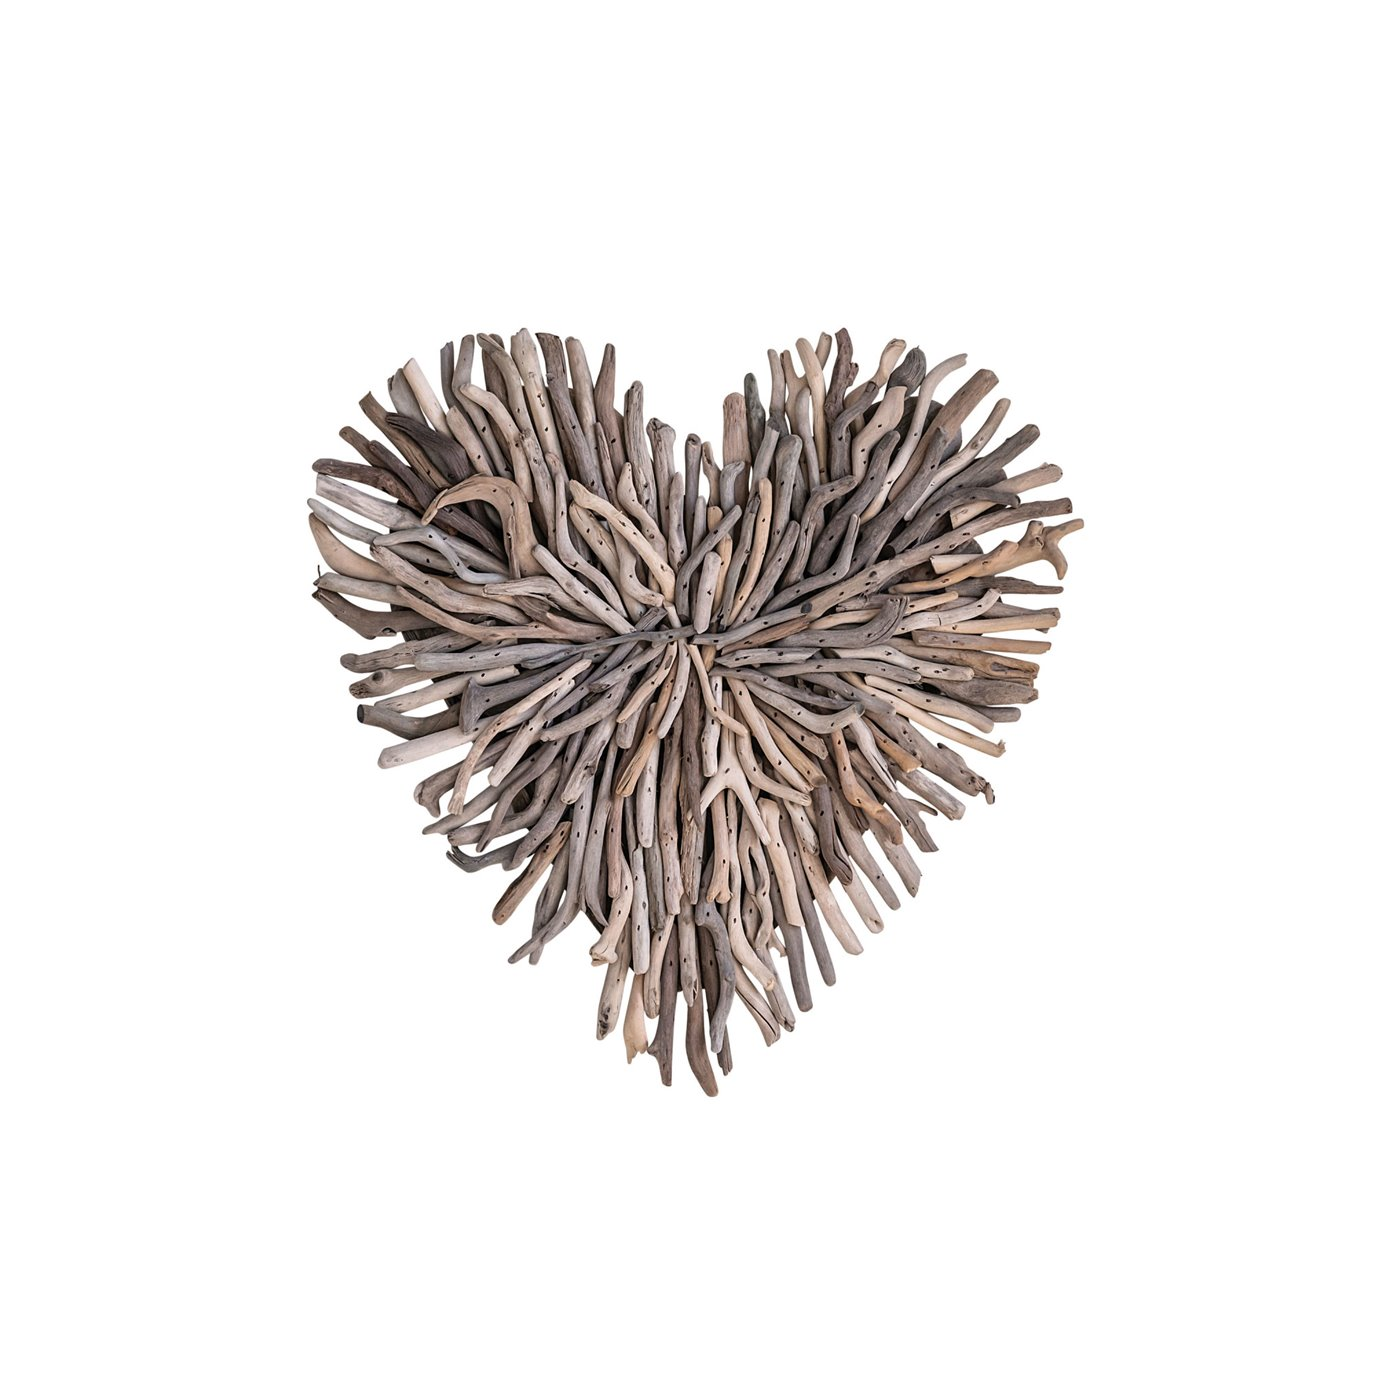 Driftwood Heart Shaped Wall Décor